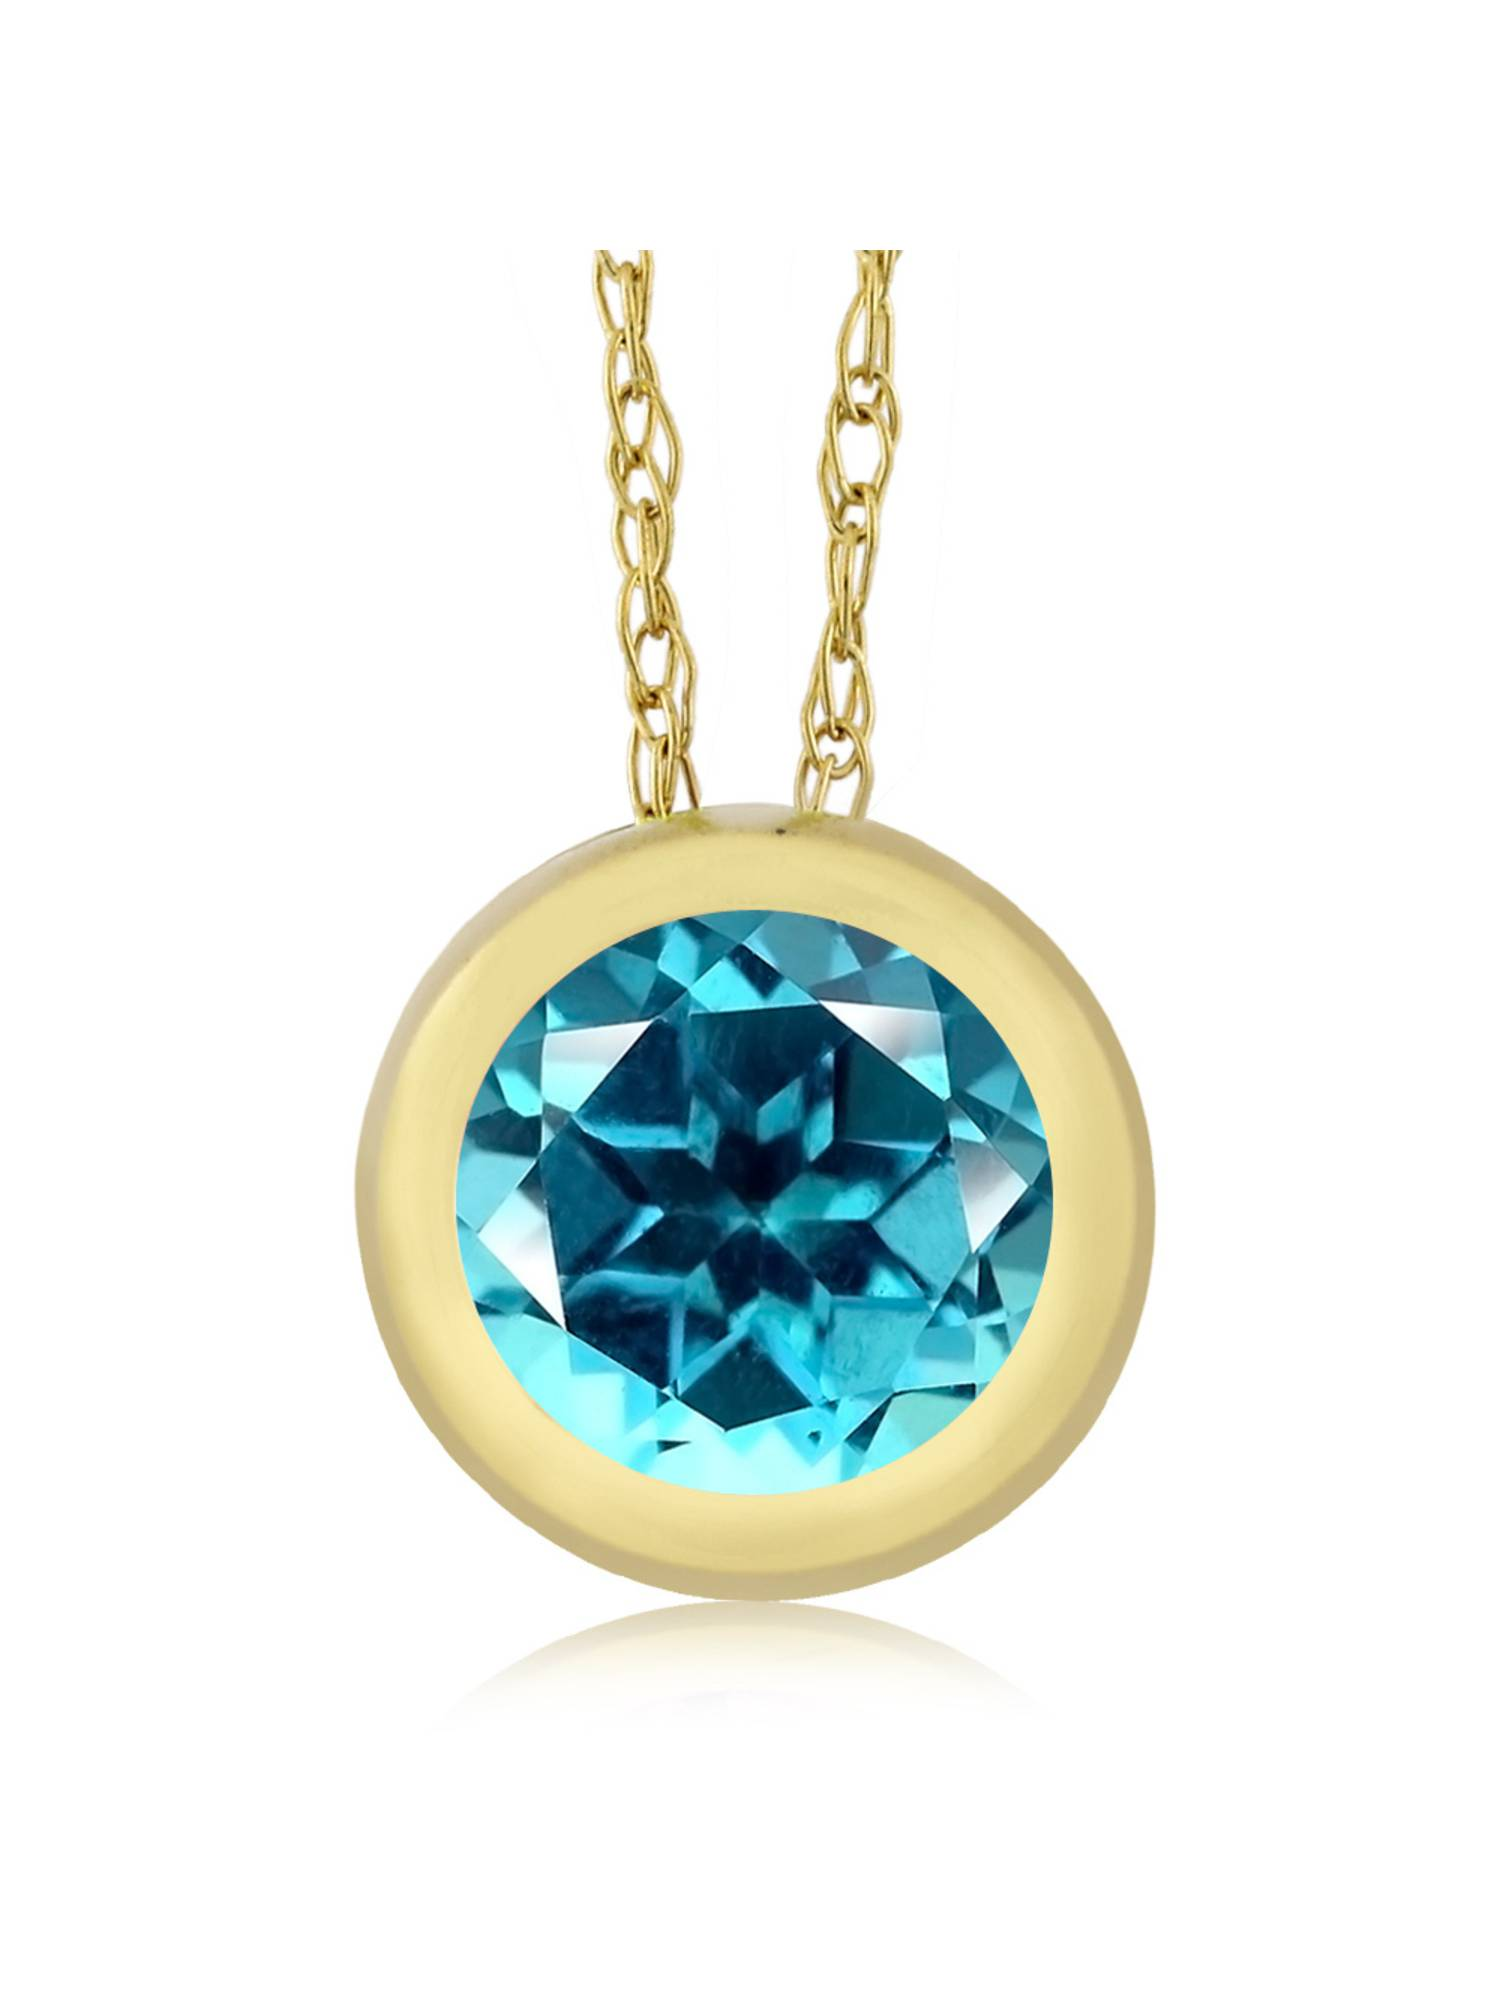 14K Yellow Gold Pendant Set with Round Paraiba Topaz from Swarovski by